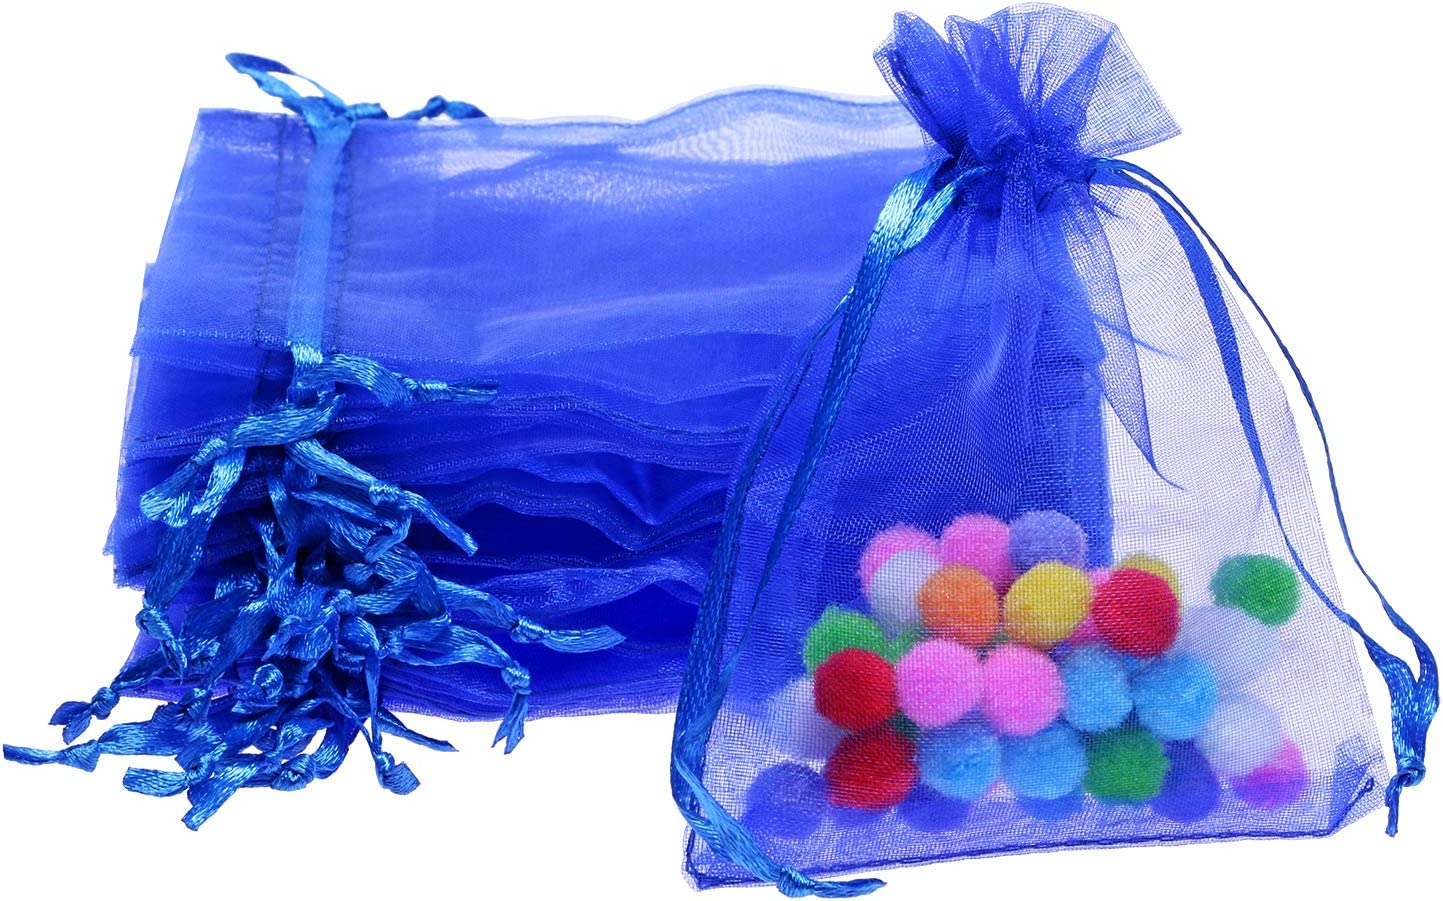 Shapenty 50pcs Organza Gift Bags Wedding Favor Candy Business Samples Display Jewelry Pouch Wrap With Drawstring For Baby Shower And Birthday Party Dark Blue Health Personal Care Amazon Com